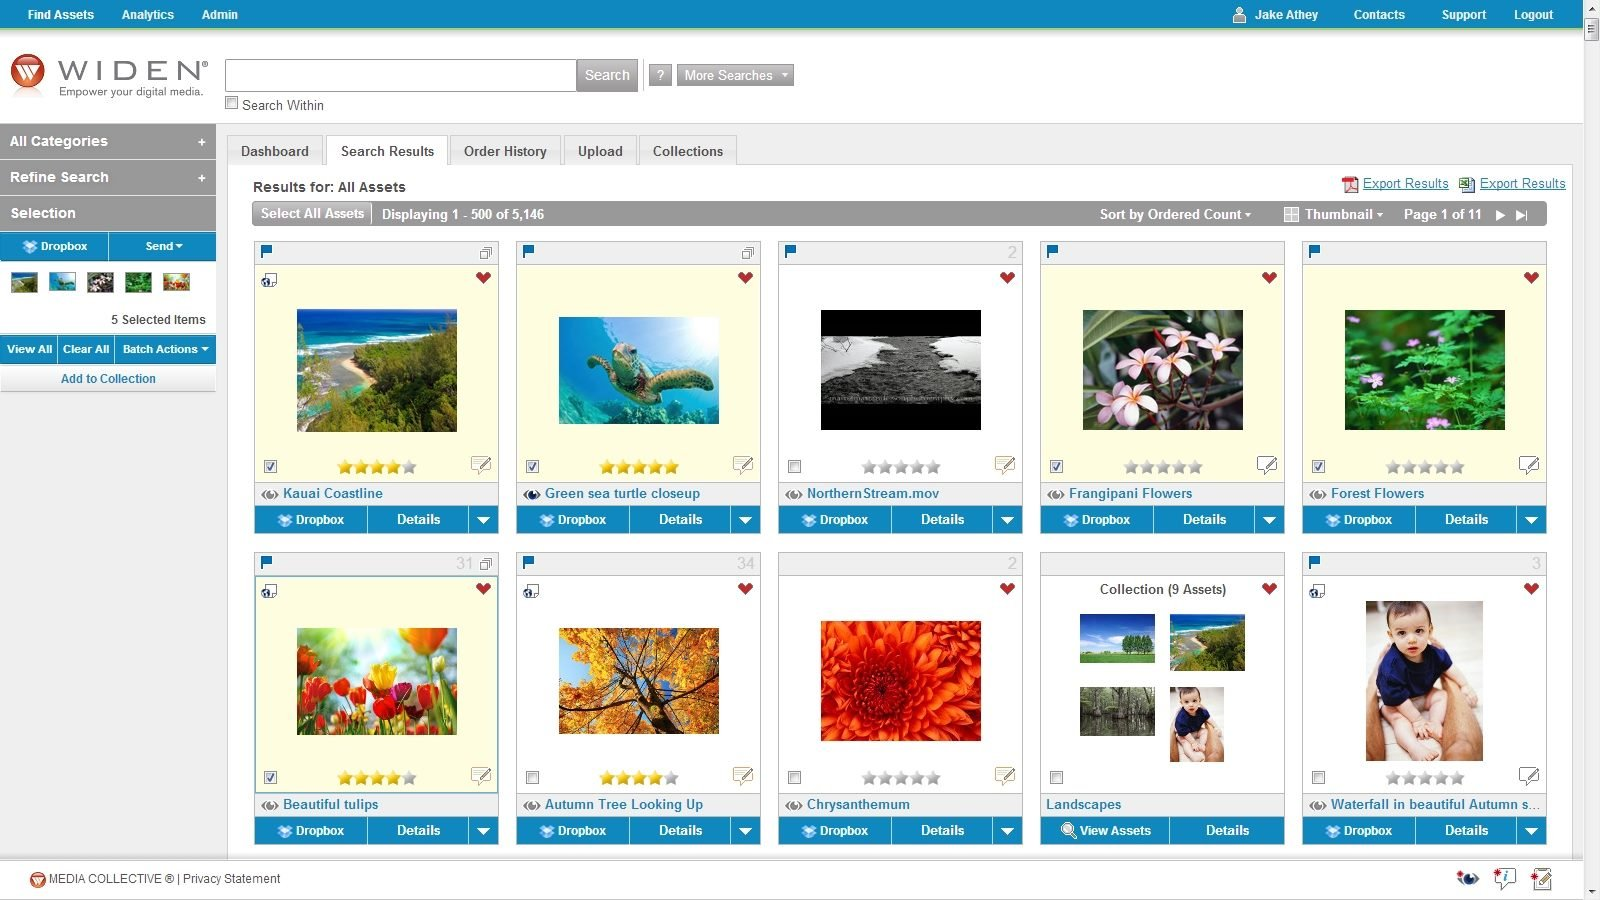 Dropbox Search Results in Widen Media Collective 6.4.jpg